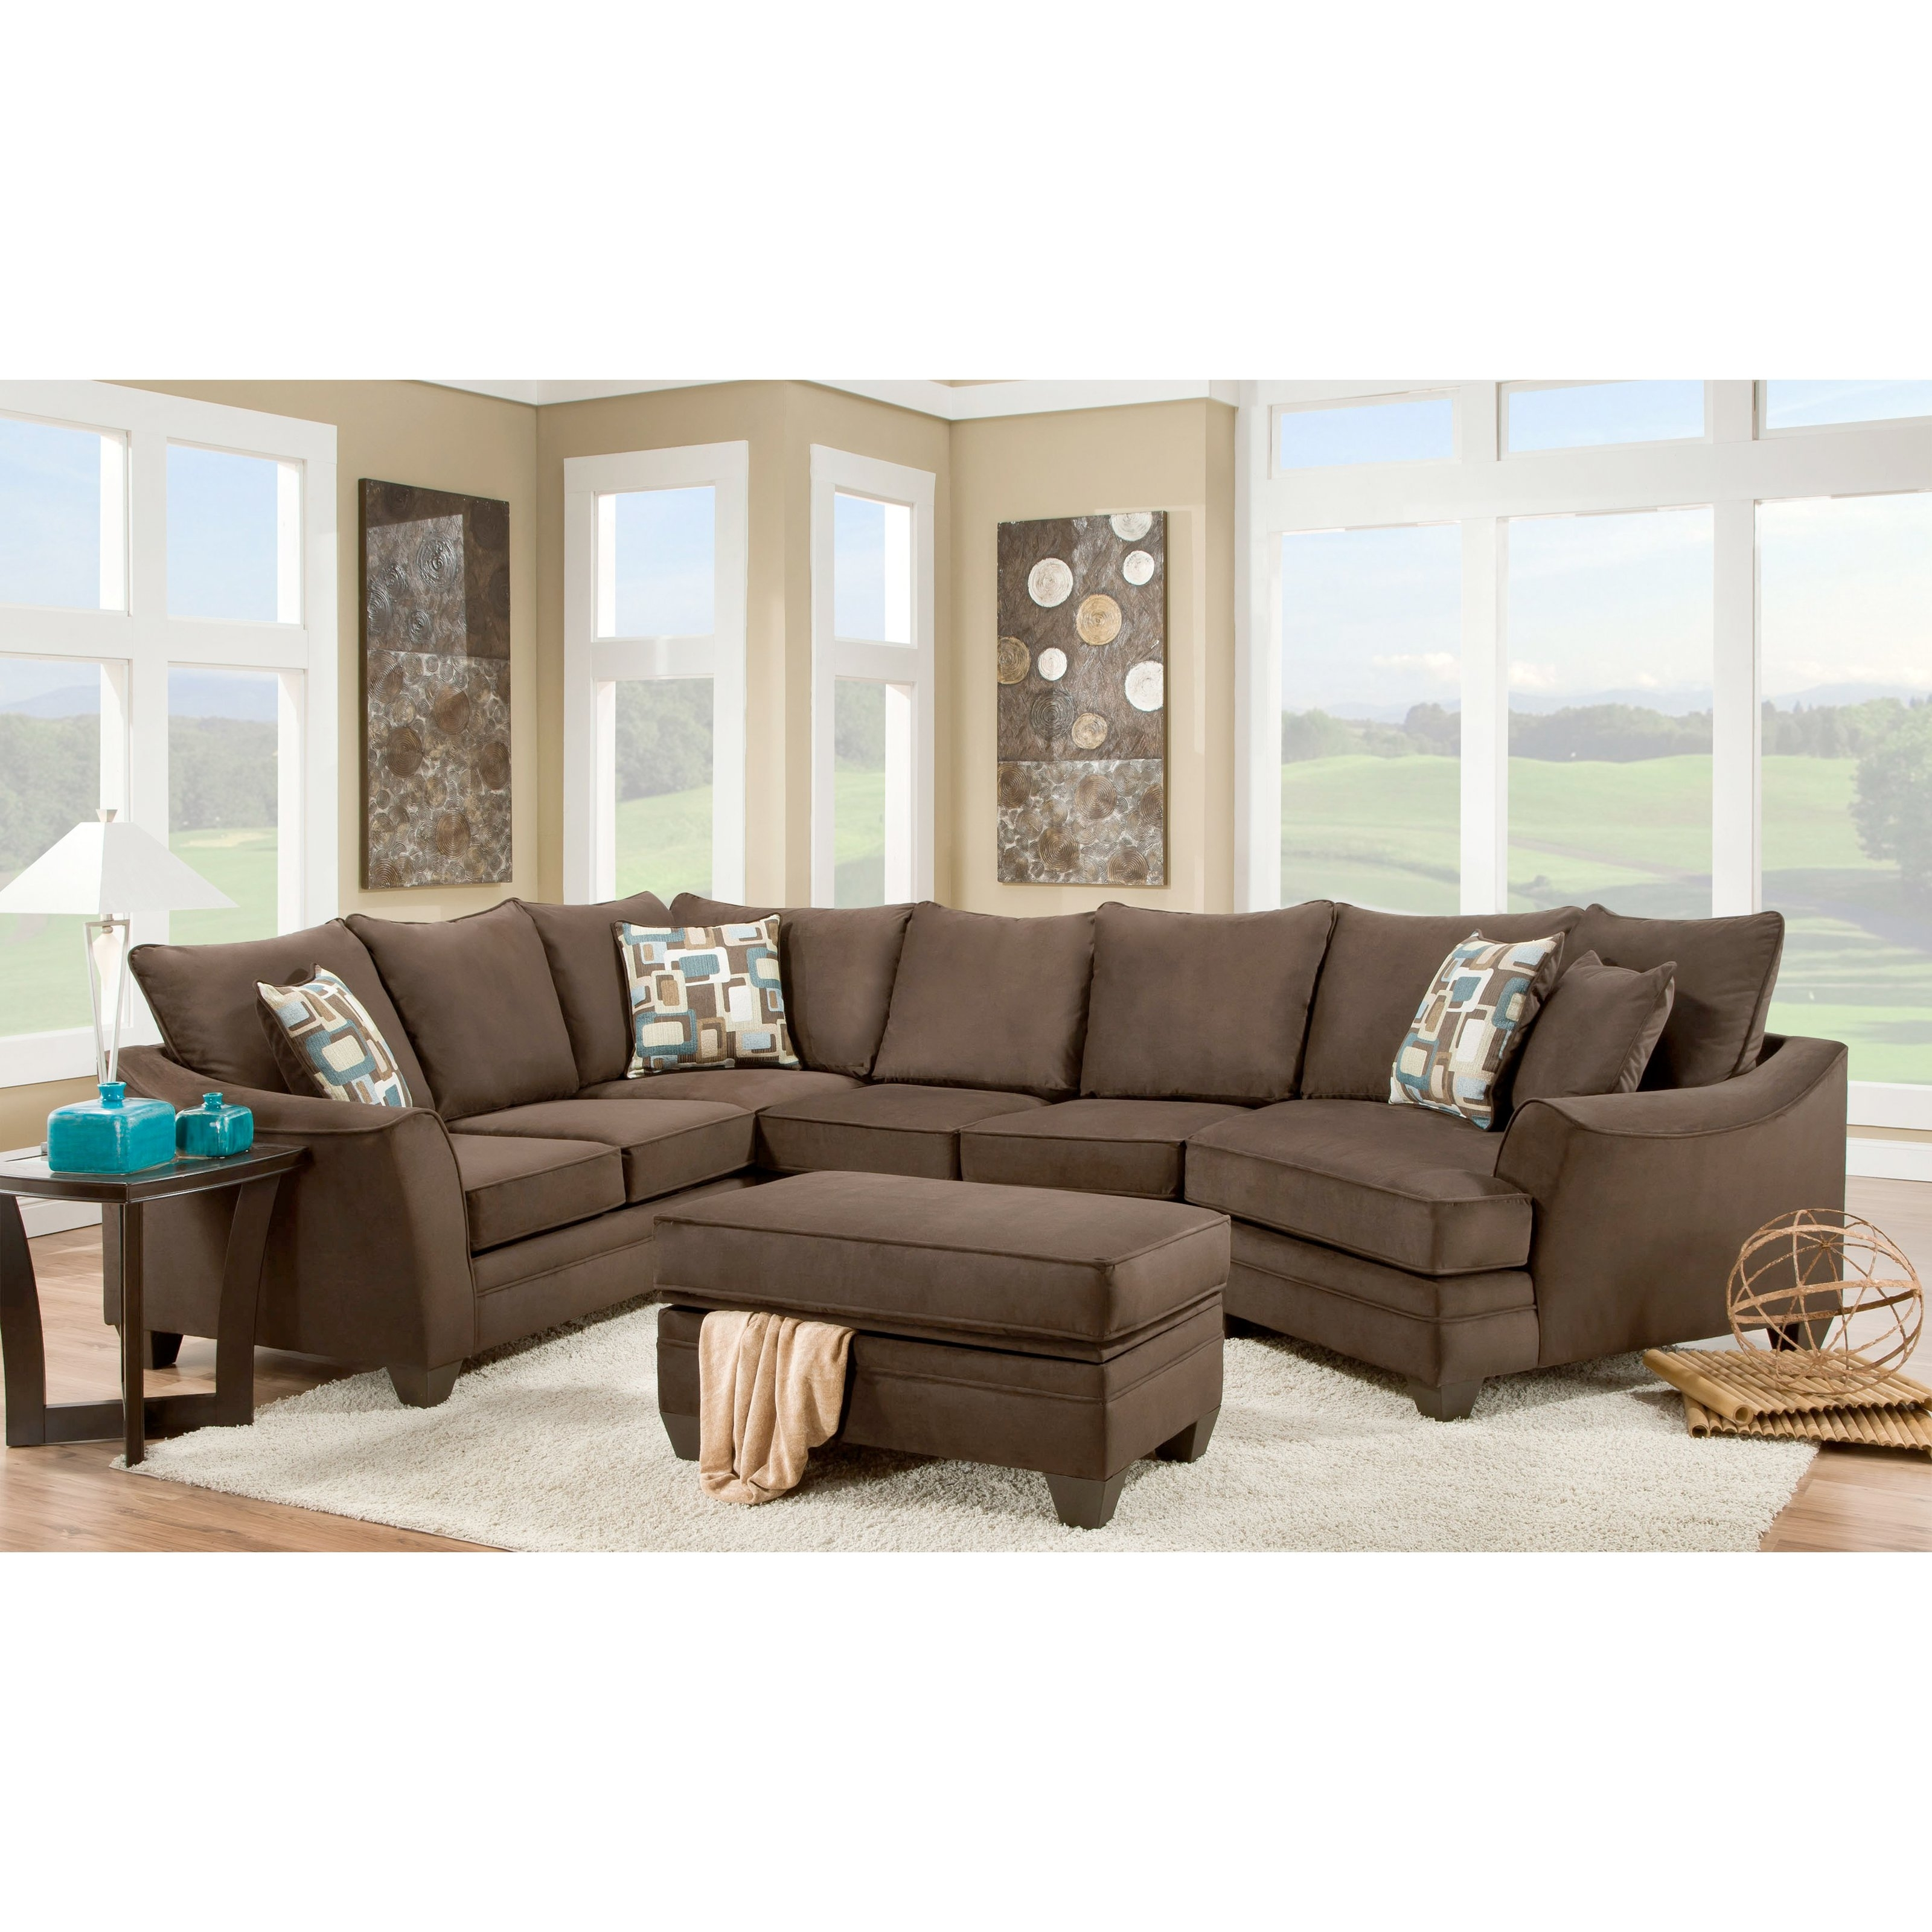 Charming Ideas Chelsea Home Furniture Bunk Beds Welland Lindsay for Oshawa Sectional Sofas (Image 1 of 10)